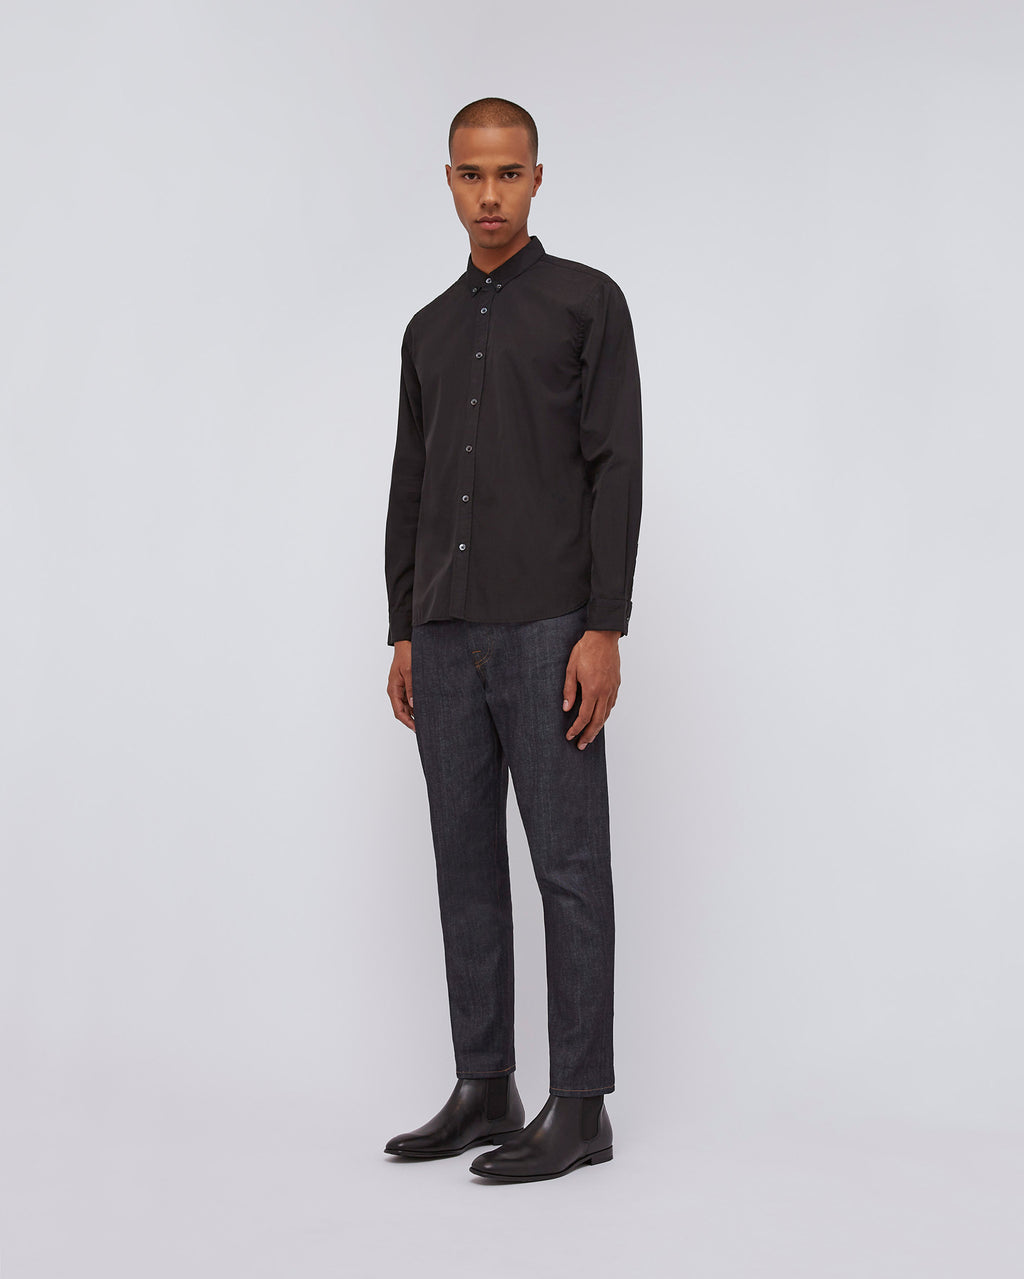 The Standard Shirt In Black